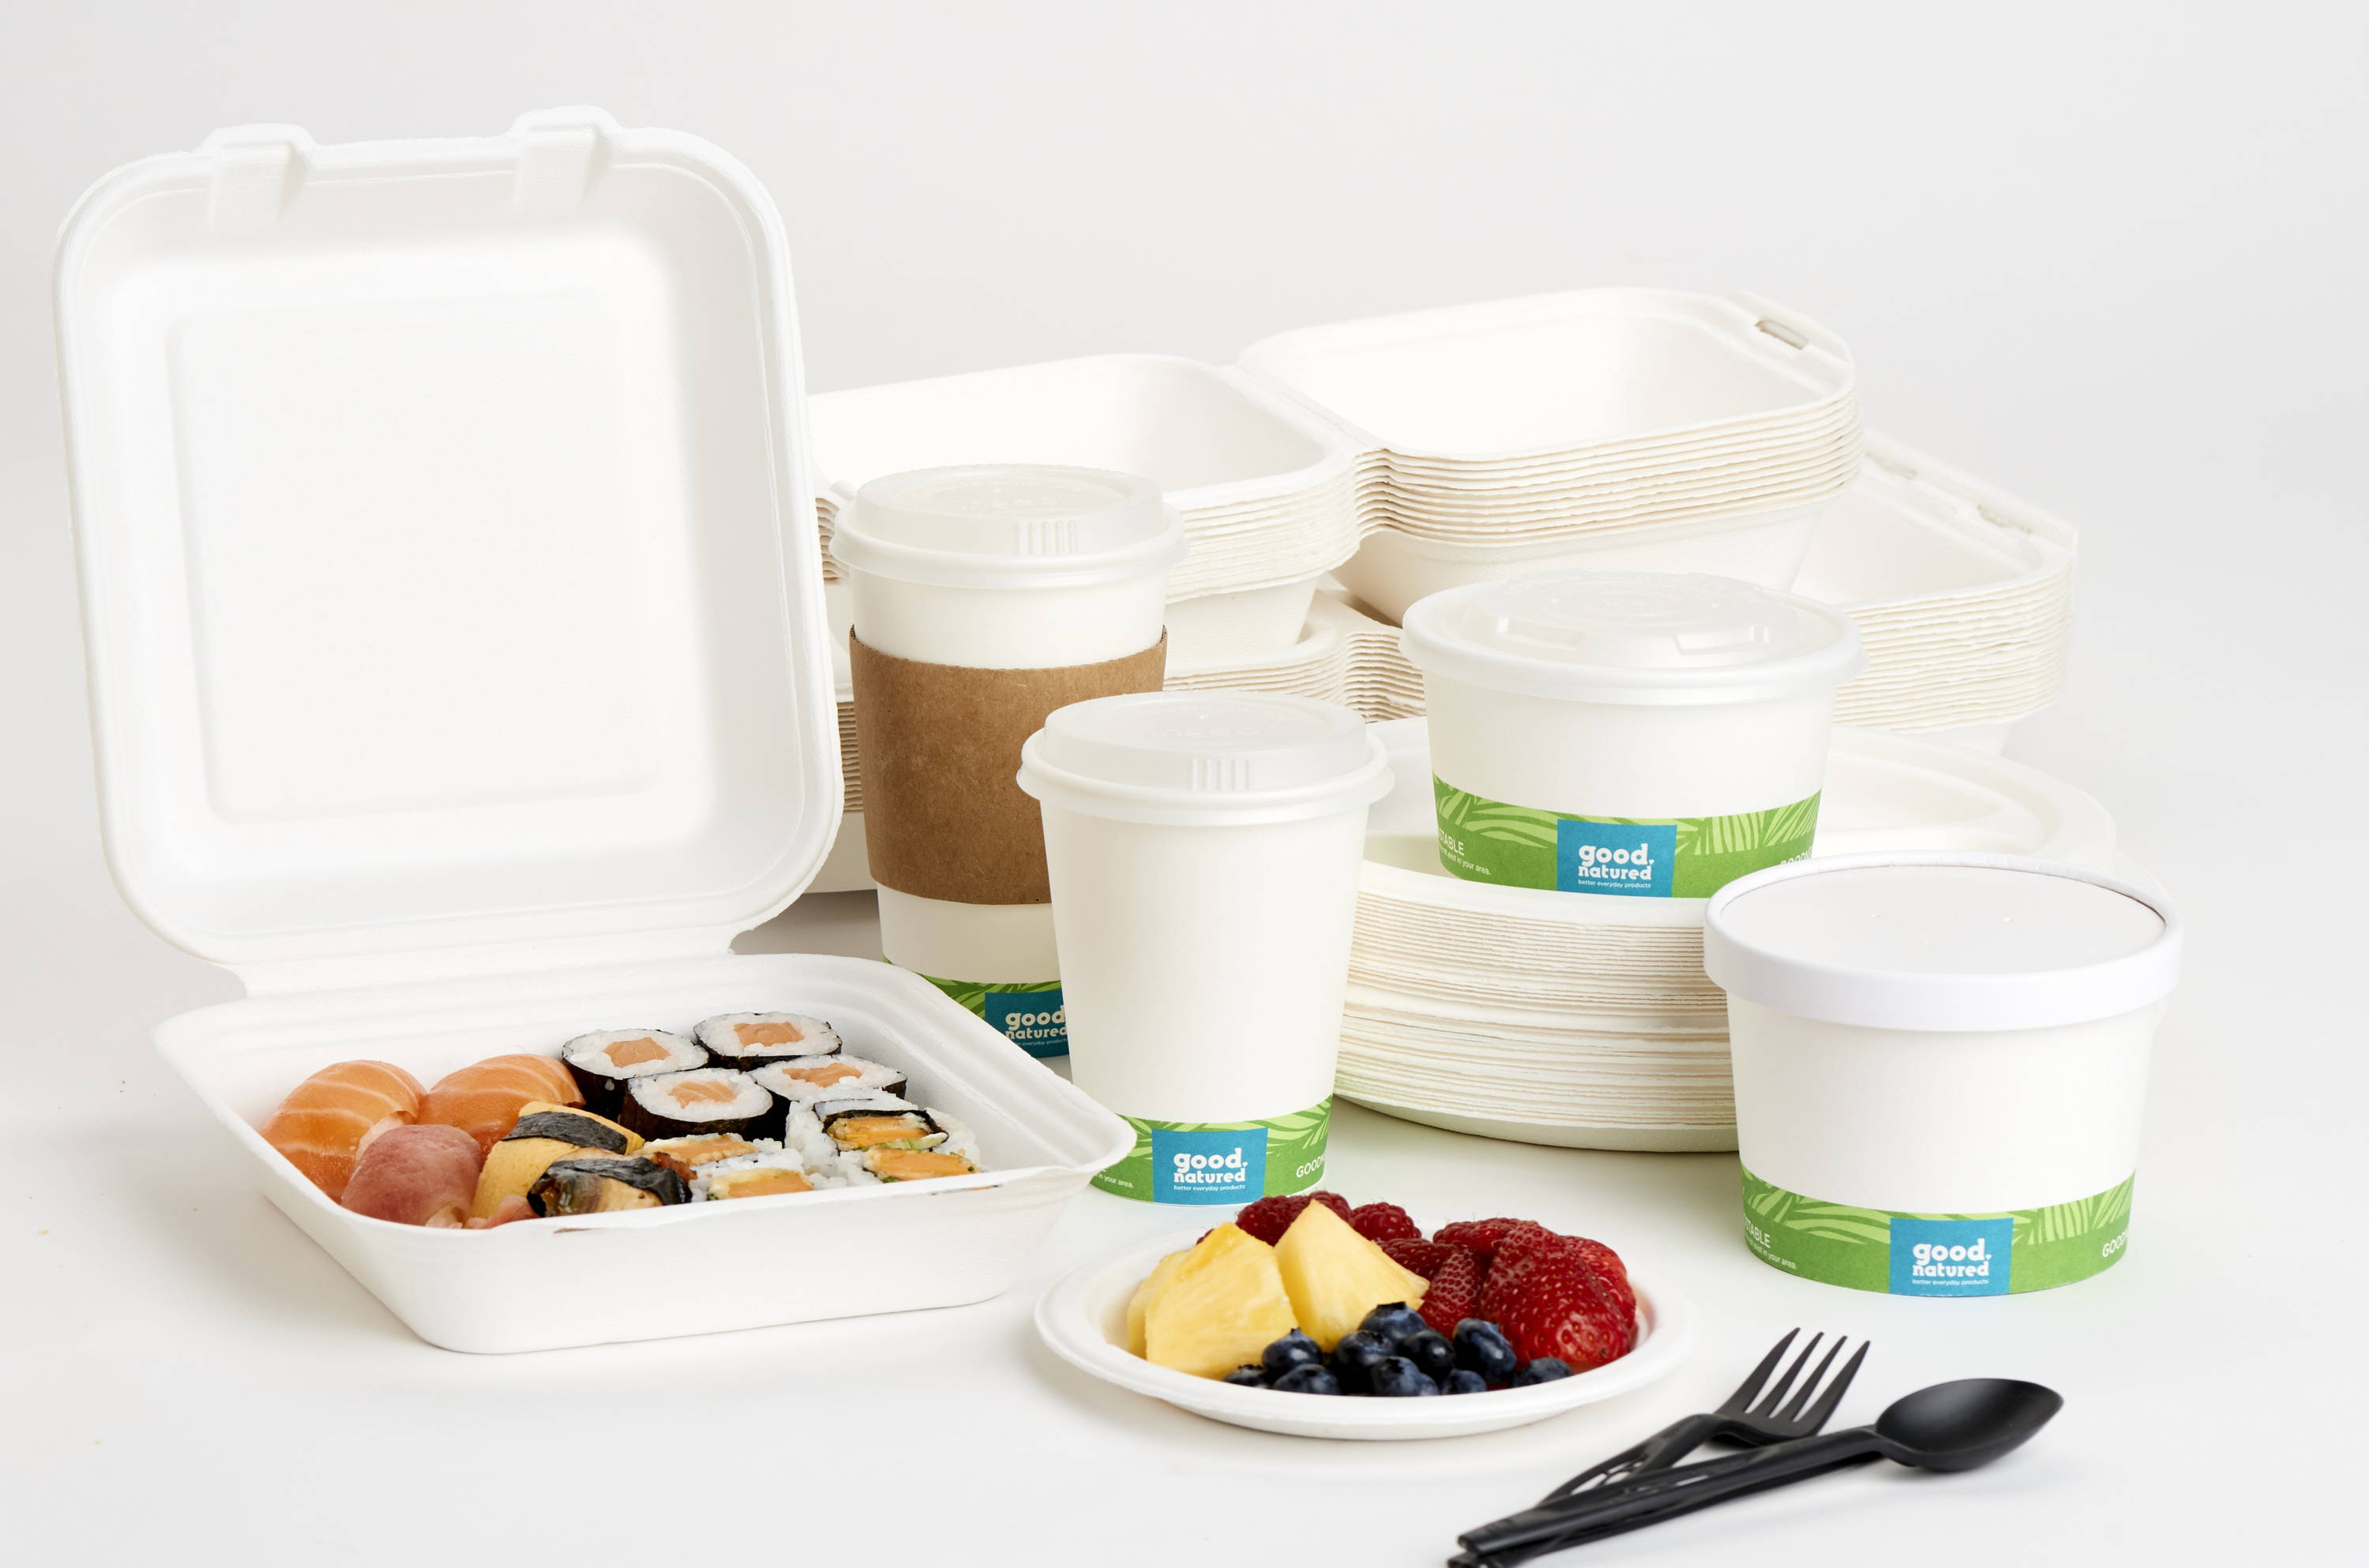 compostable carry-out containers and utensils by Canadian bioplastic company